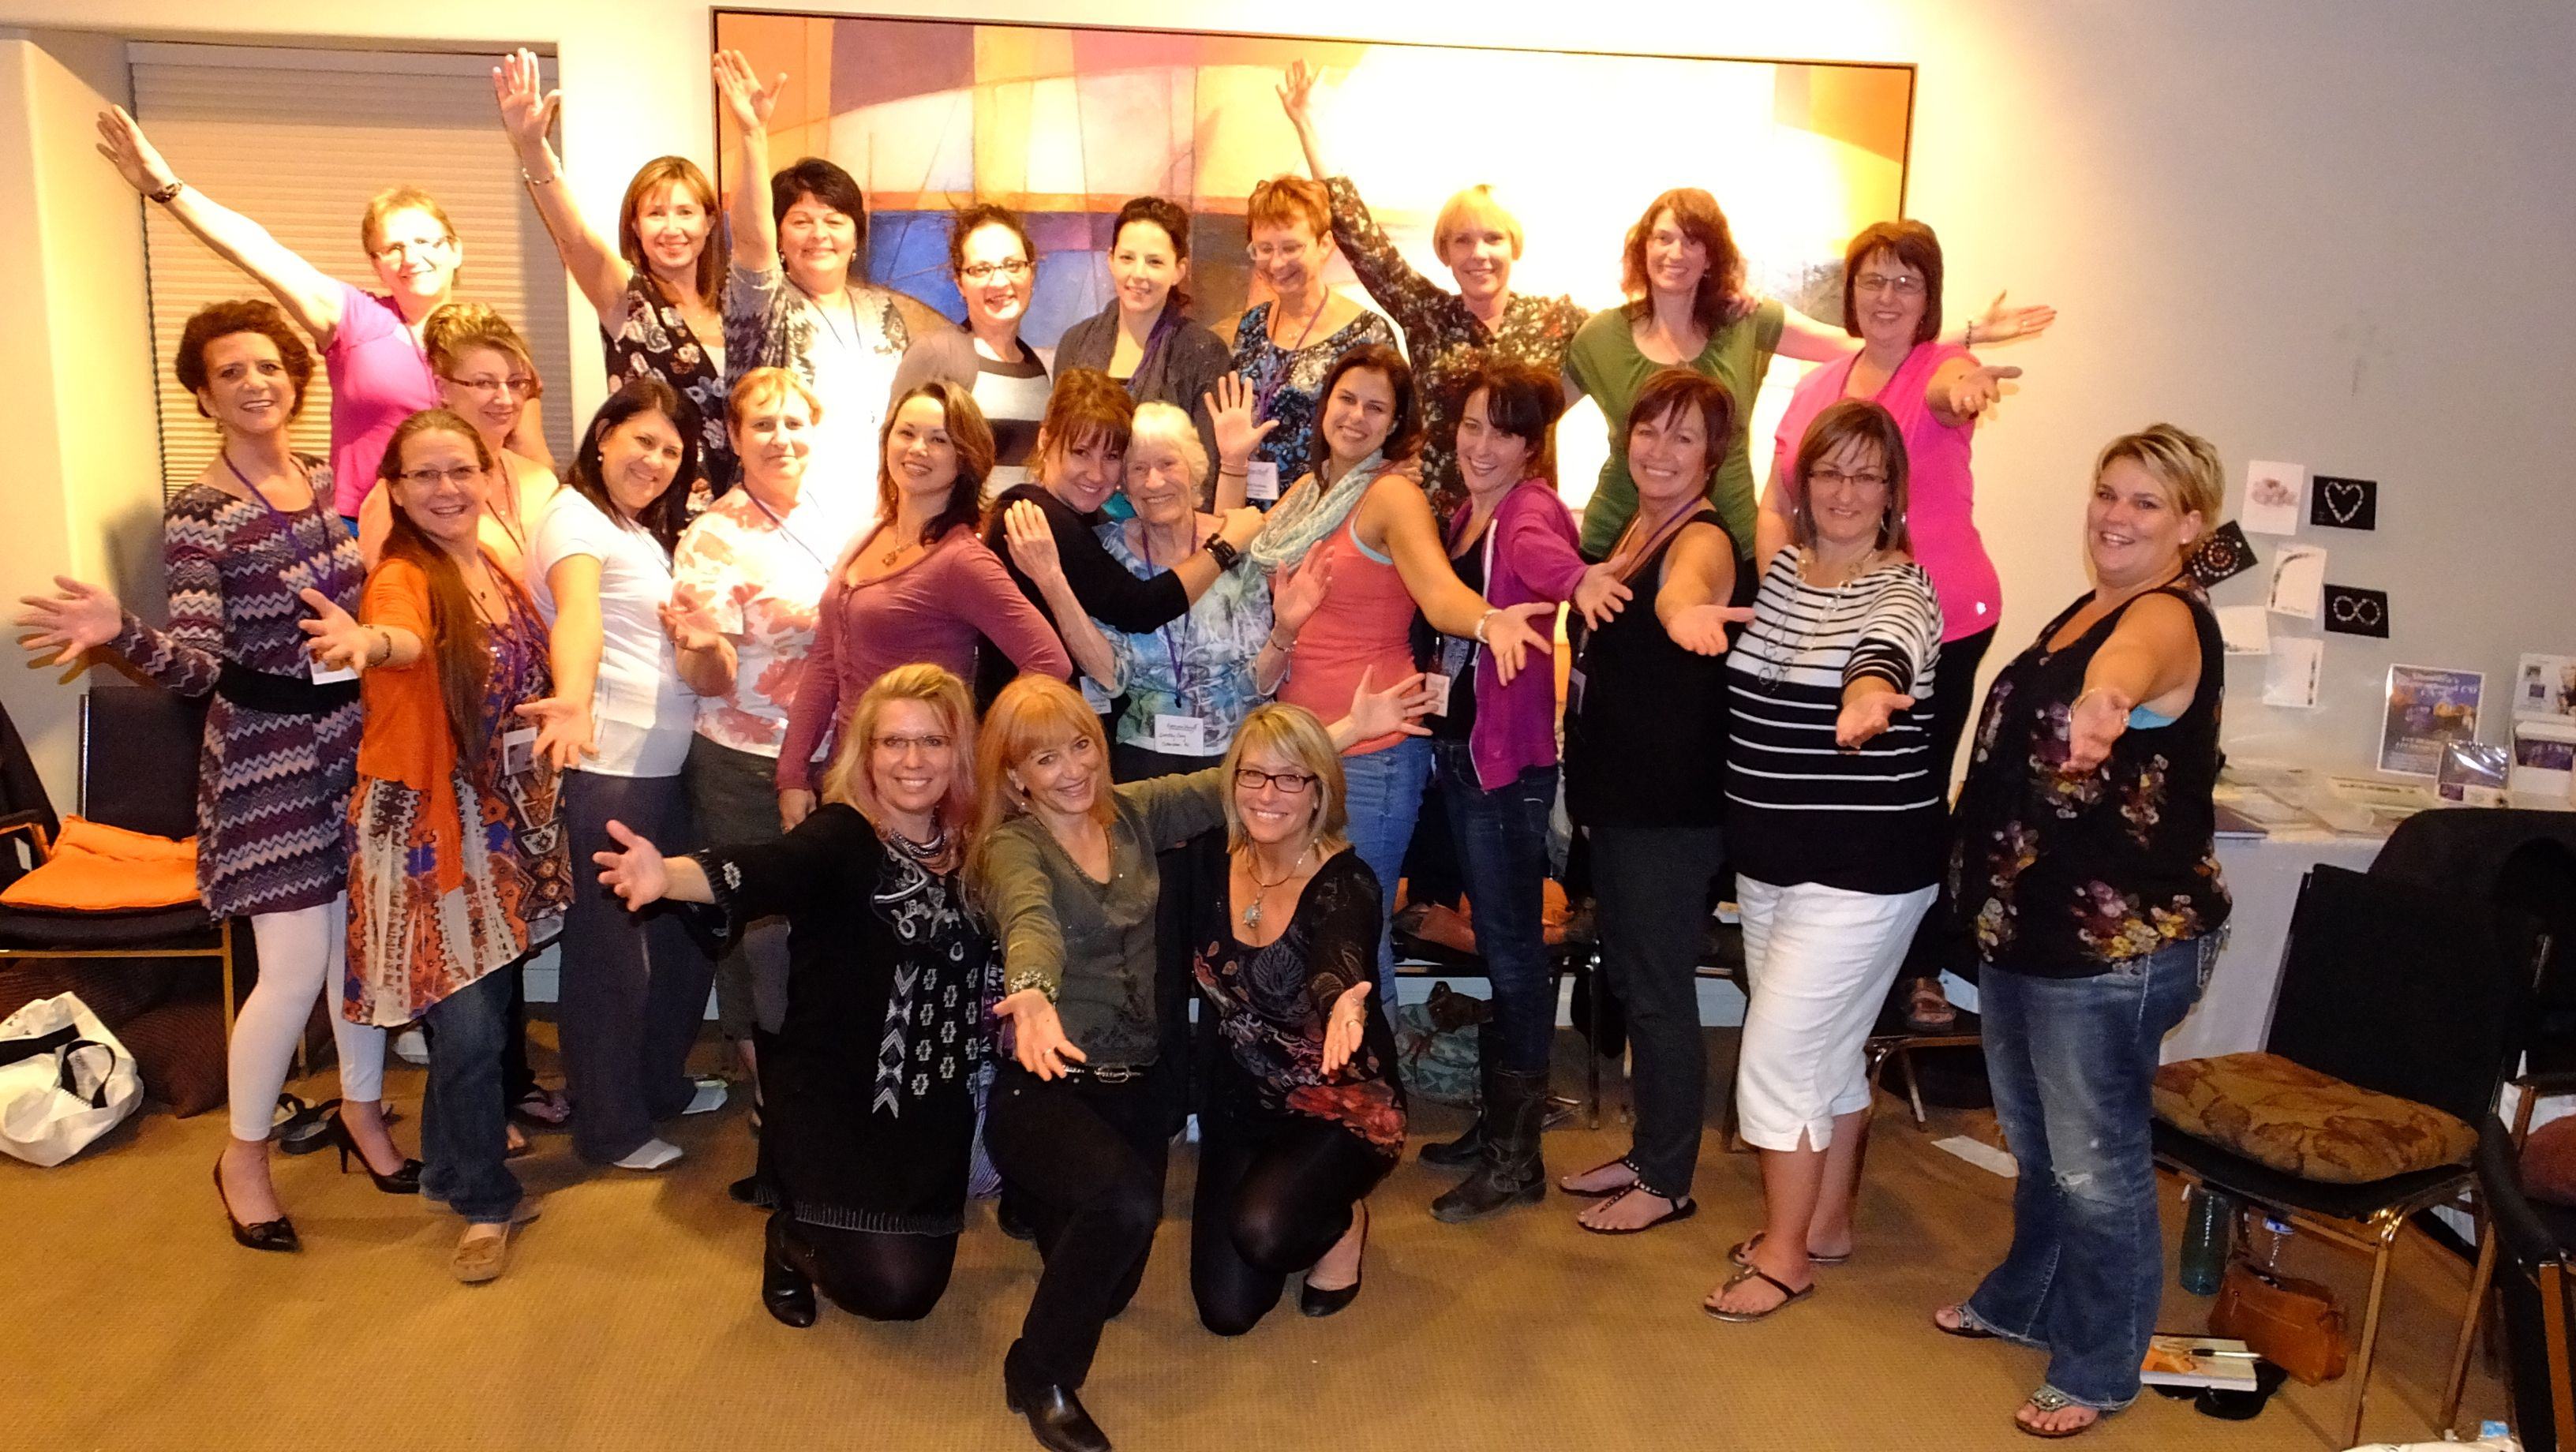 Group photo from the 2013 Sedona, AZ Experience Yourself Women's Retreat. See yourself in this photo? Join us in 2014 - www.experienceyourself.net. See you soon!